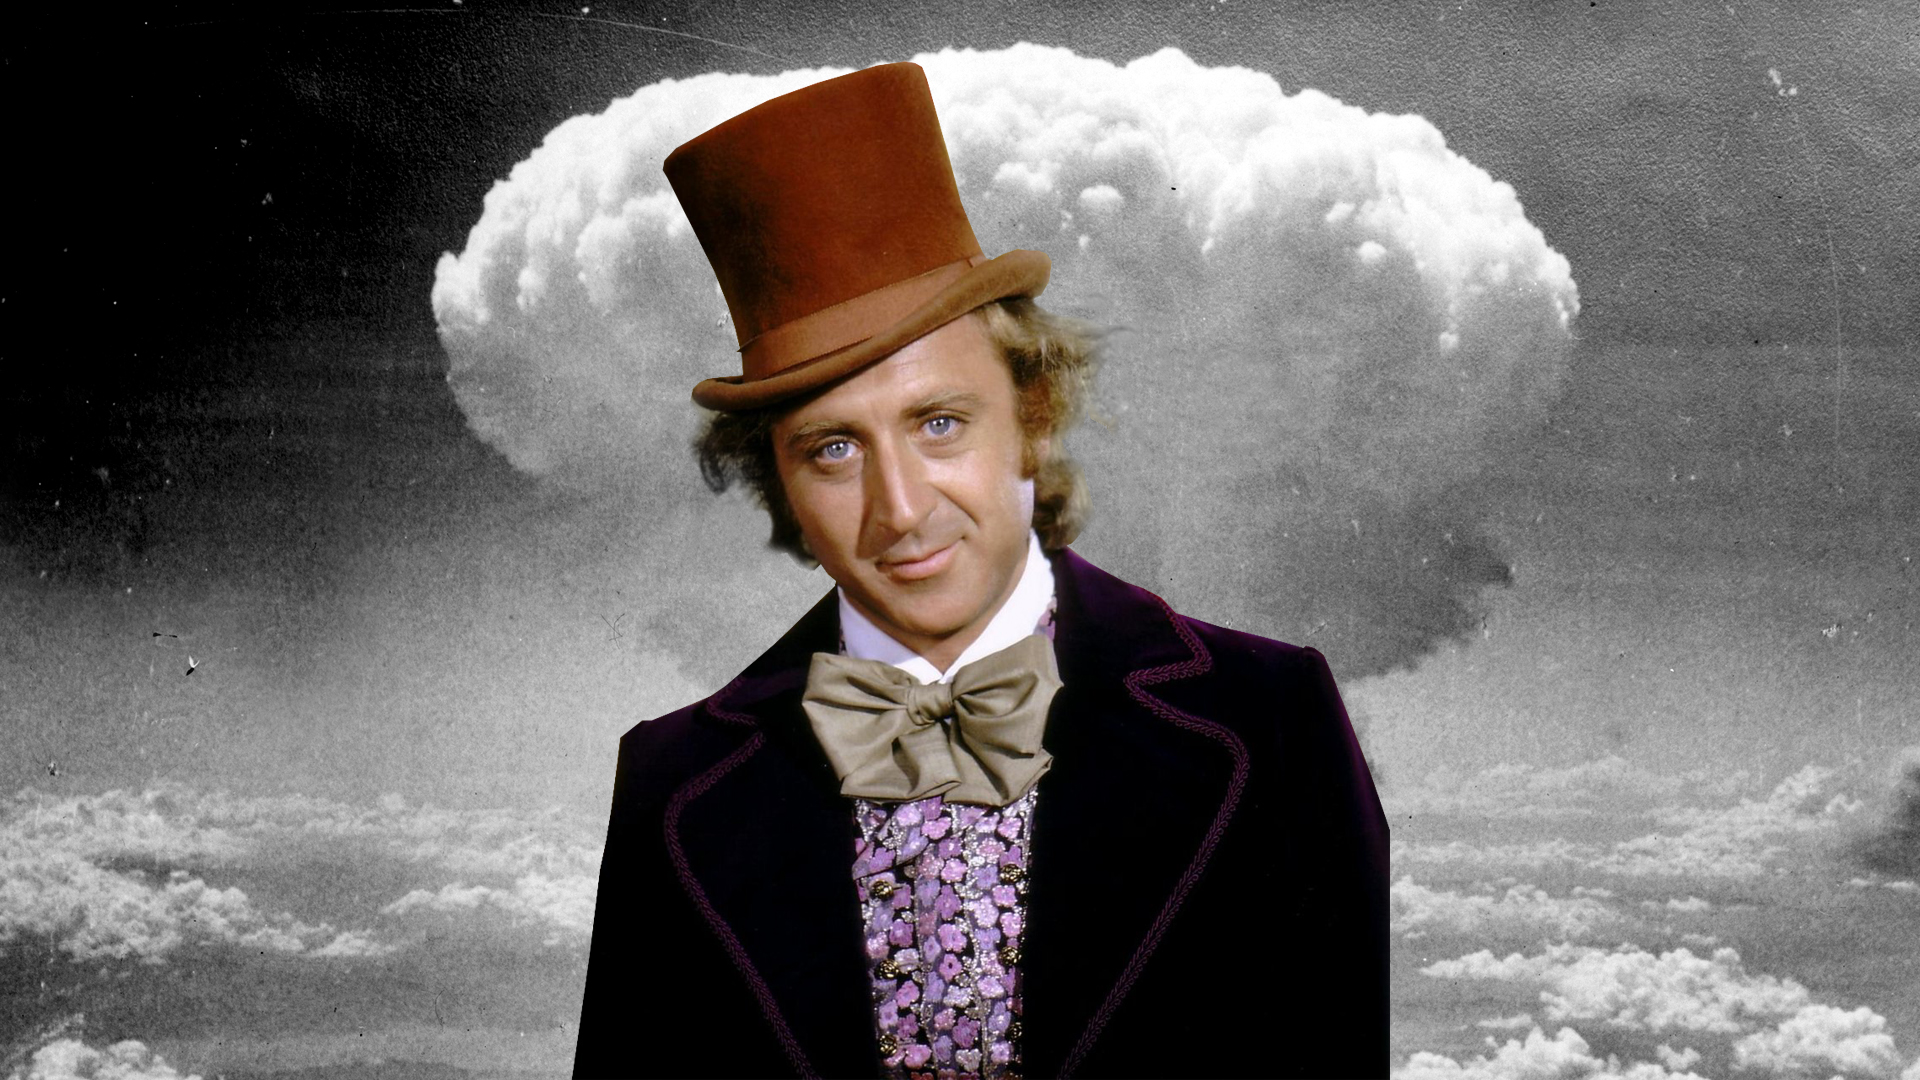 4 willy wonka the chocolate factory hd wallpapers